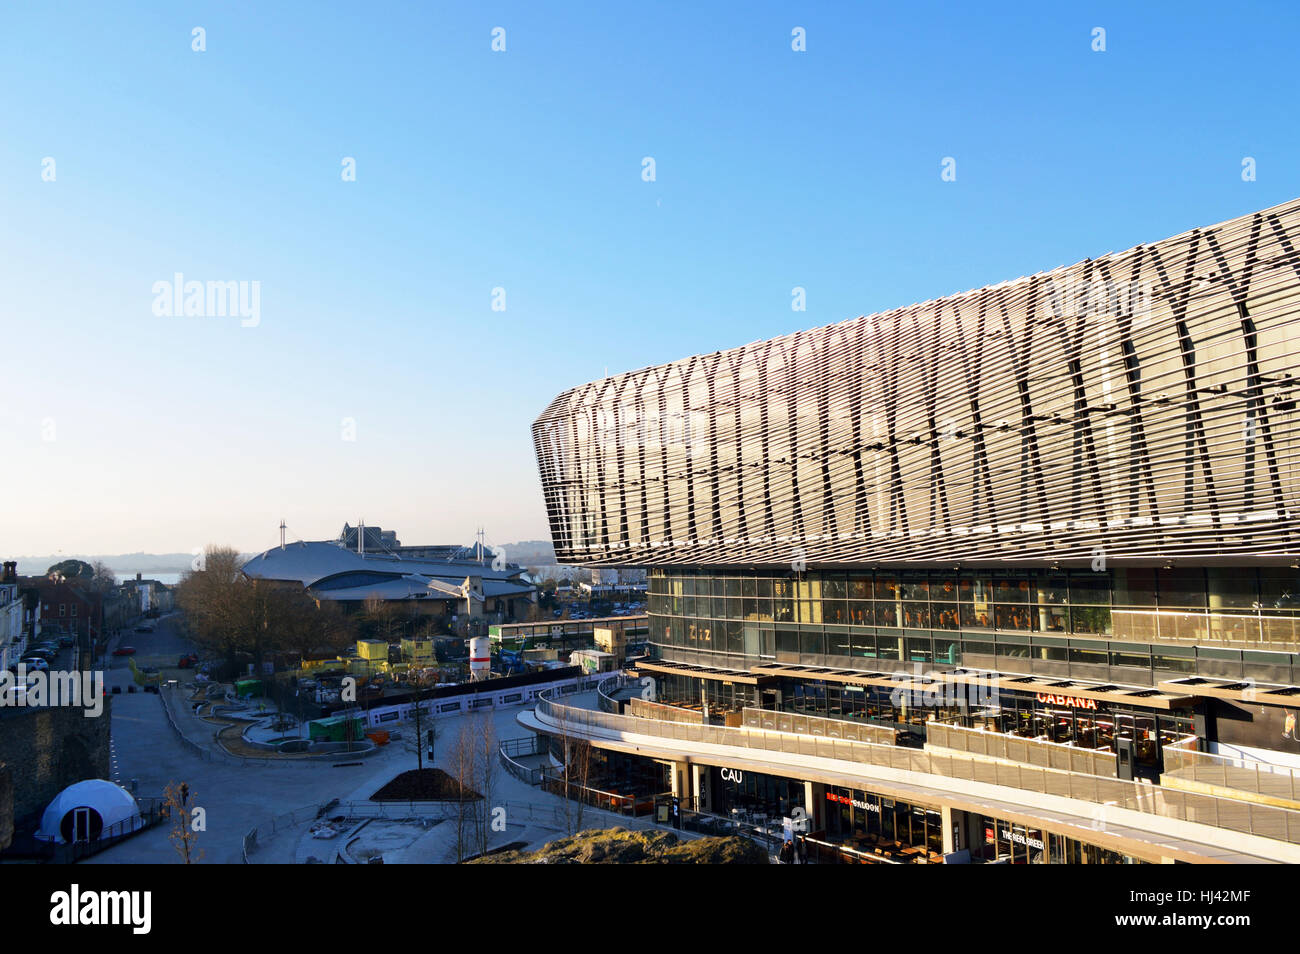 View over Southampton with the new extension to Westquay to the right, Southampton, UK, 2017 - Stock Image